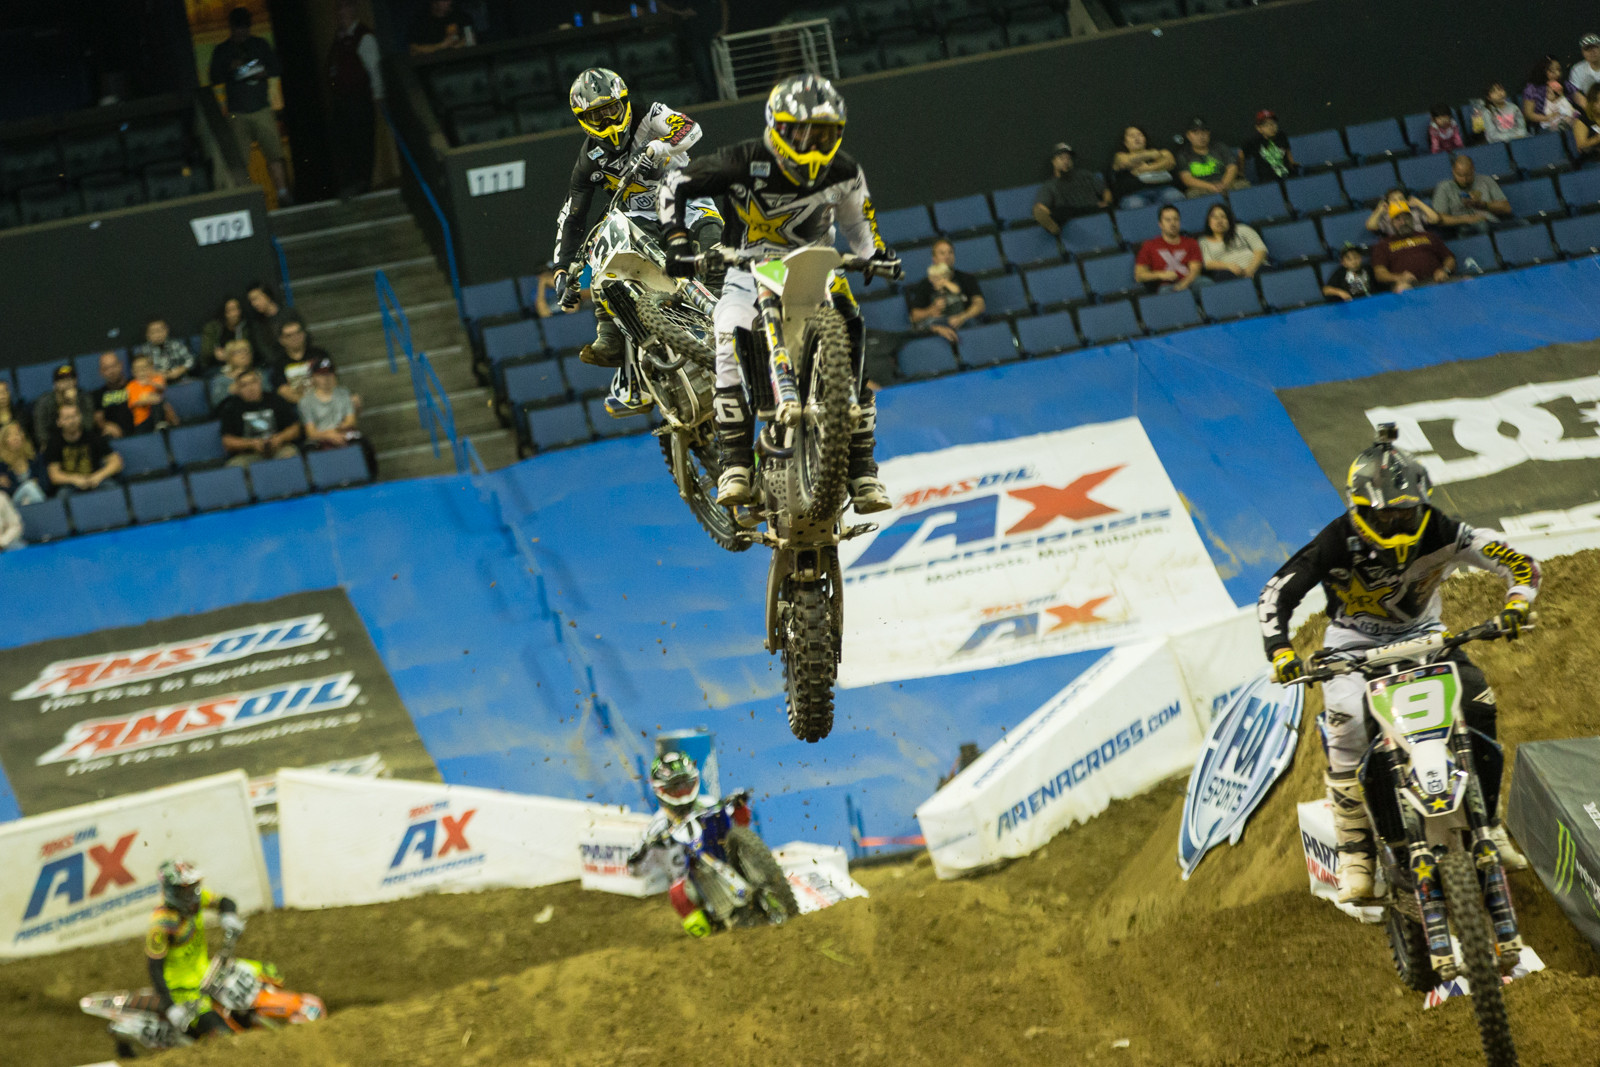 Husqvarna Train - Photo Gallery: Ontario Arenacross - Saturday Night - Motocross Pictures - Vital MX